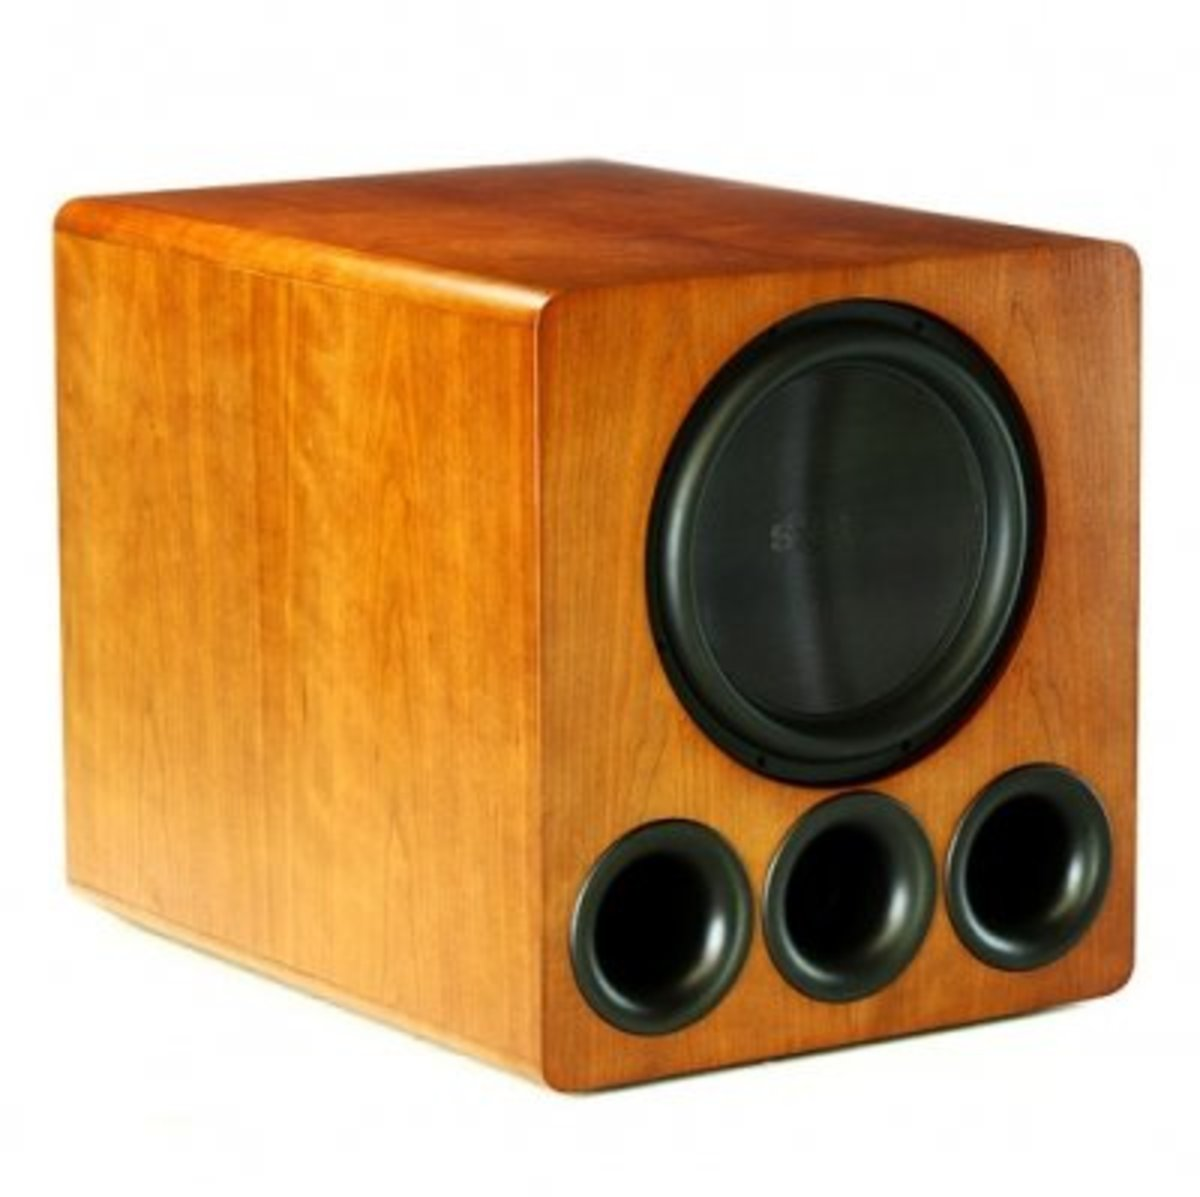 Do You Need A Subwoofer With Floorstanding / Large Speakers?